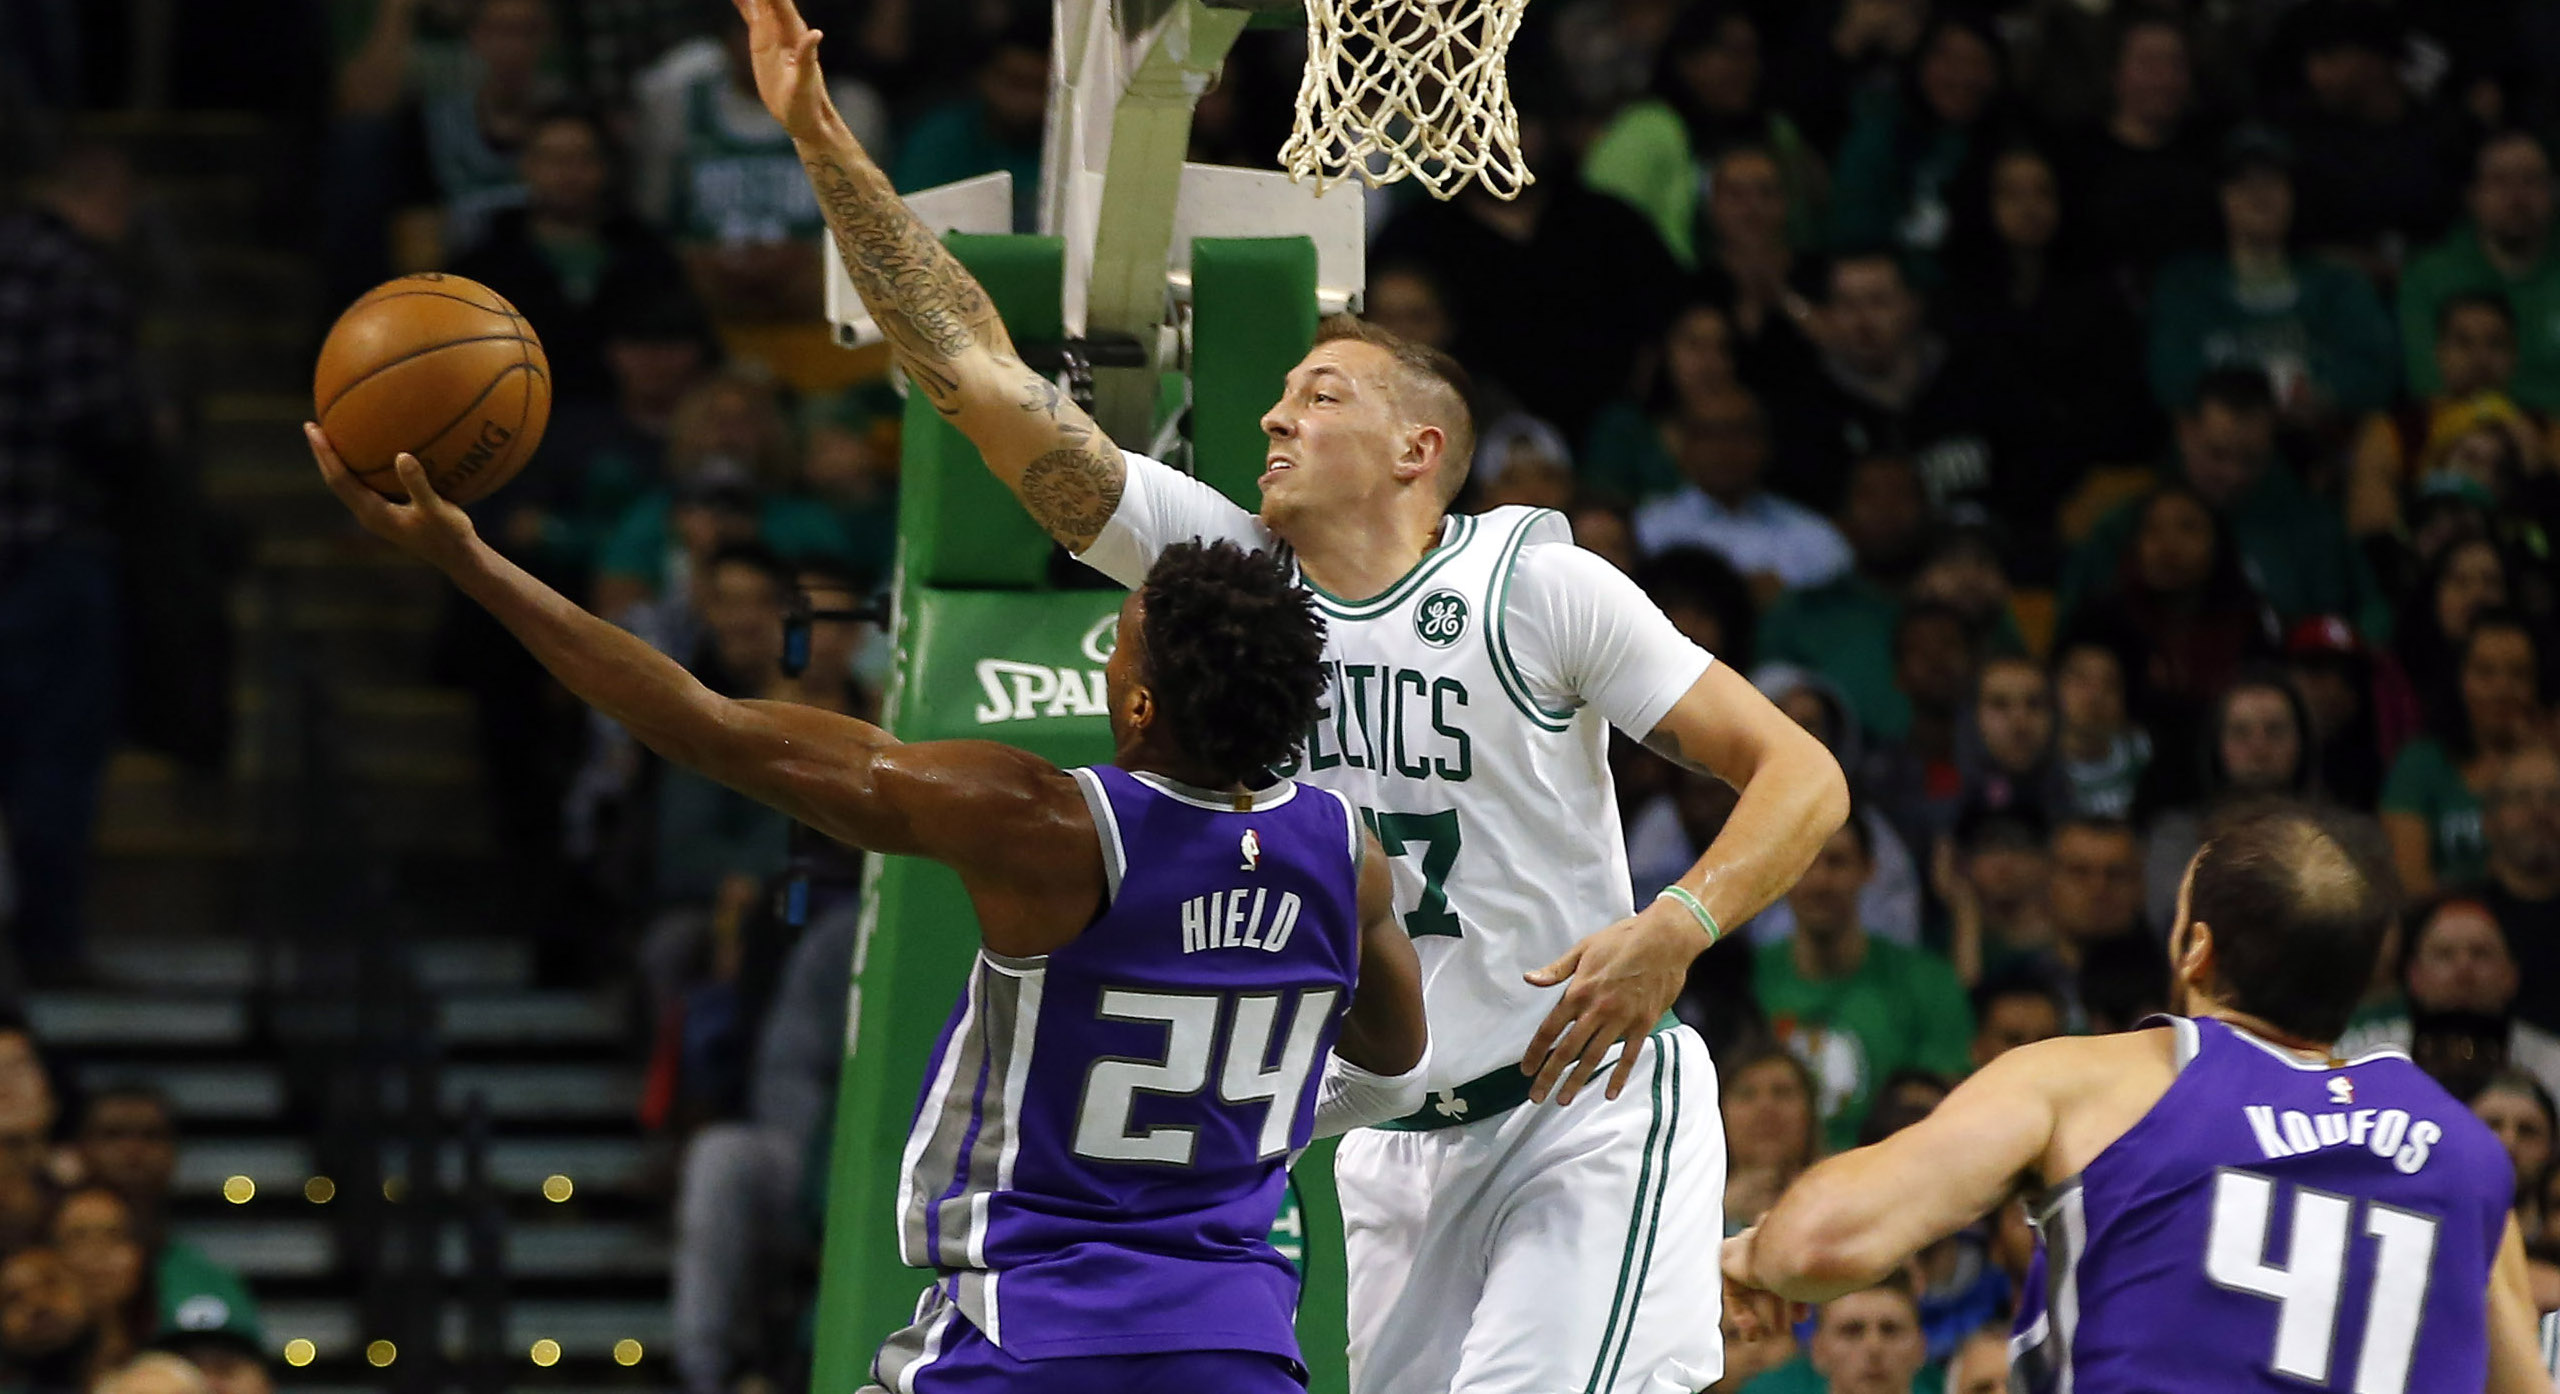 Daniel Theis taponando a Buddy Hield, en un Sacaramento Kings, Boston Celtics, racha